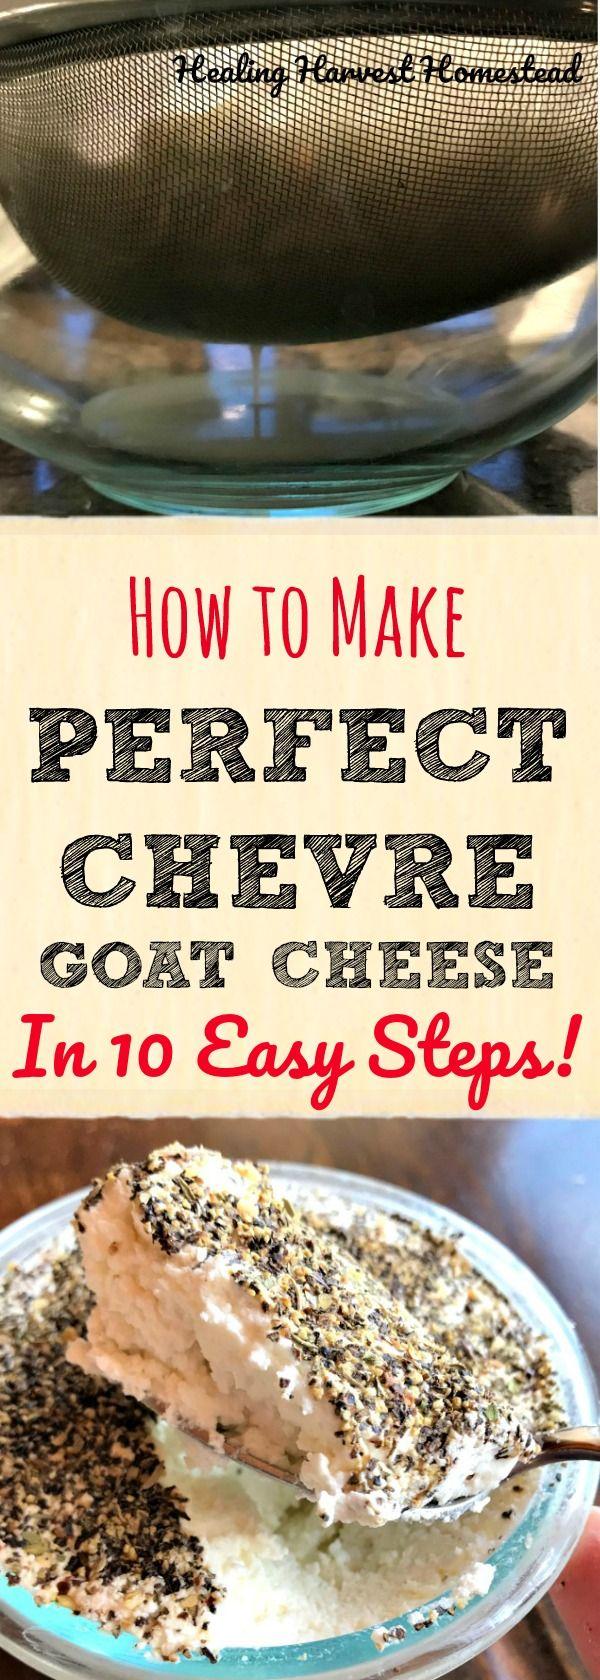 This is seriously one of the best things I've ever done for myself: I learned how to make chèvre (goat) cheese! Yep! I took Corina Sahlin's Online Cheesemaking Course, and I've learned how to make this cheese, plus Gouda Cheese, Vino al Cabra, and two kinds of yogurt with her easy methods and cheese recipes. Find out how to make Chèvre cheese in just 10 steps!